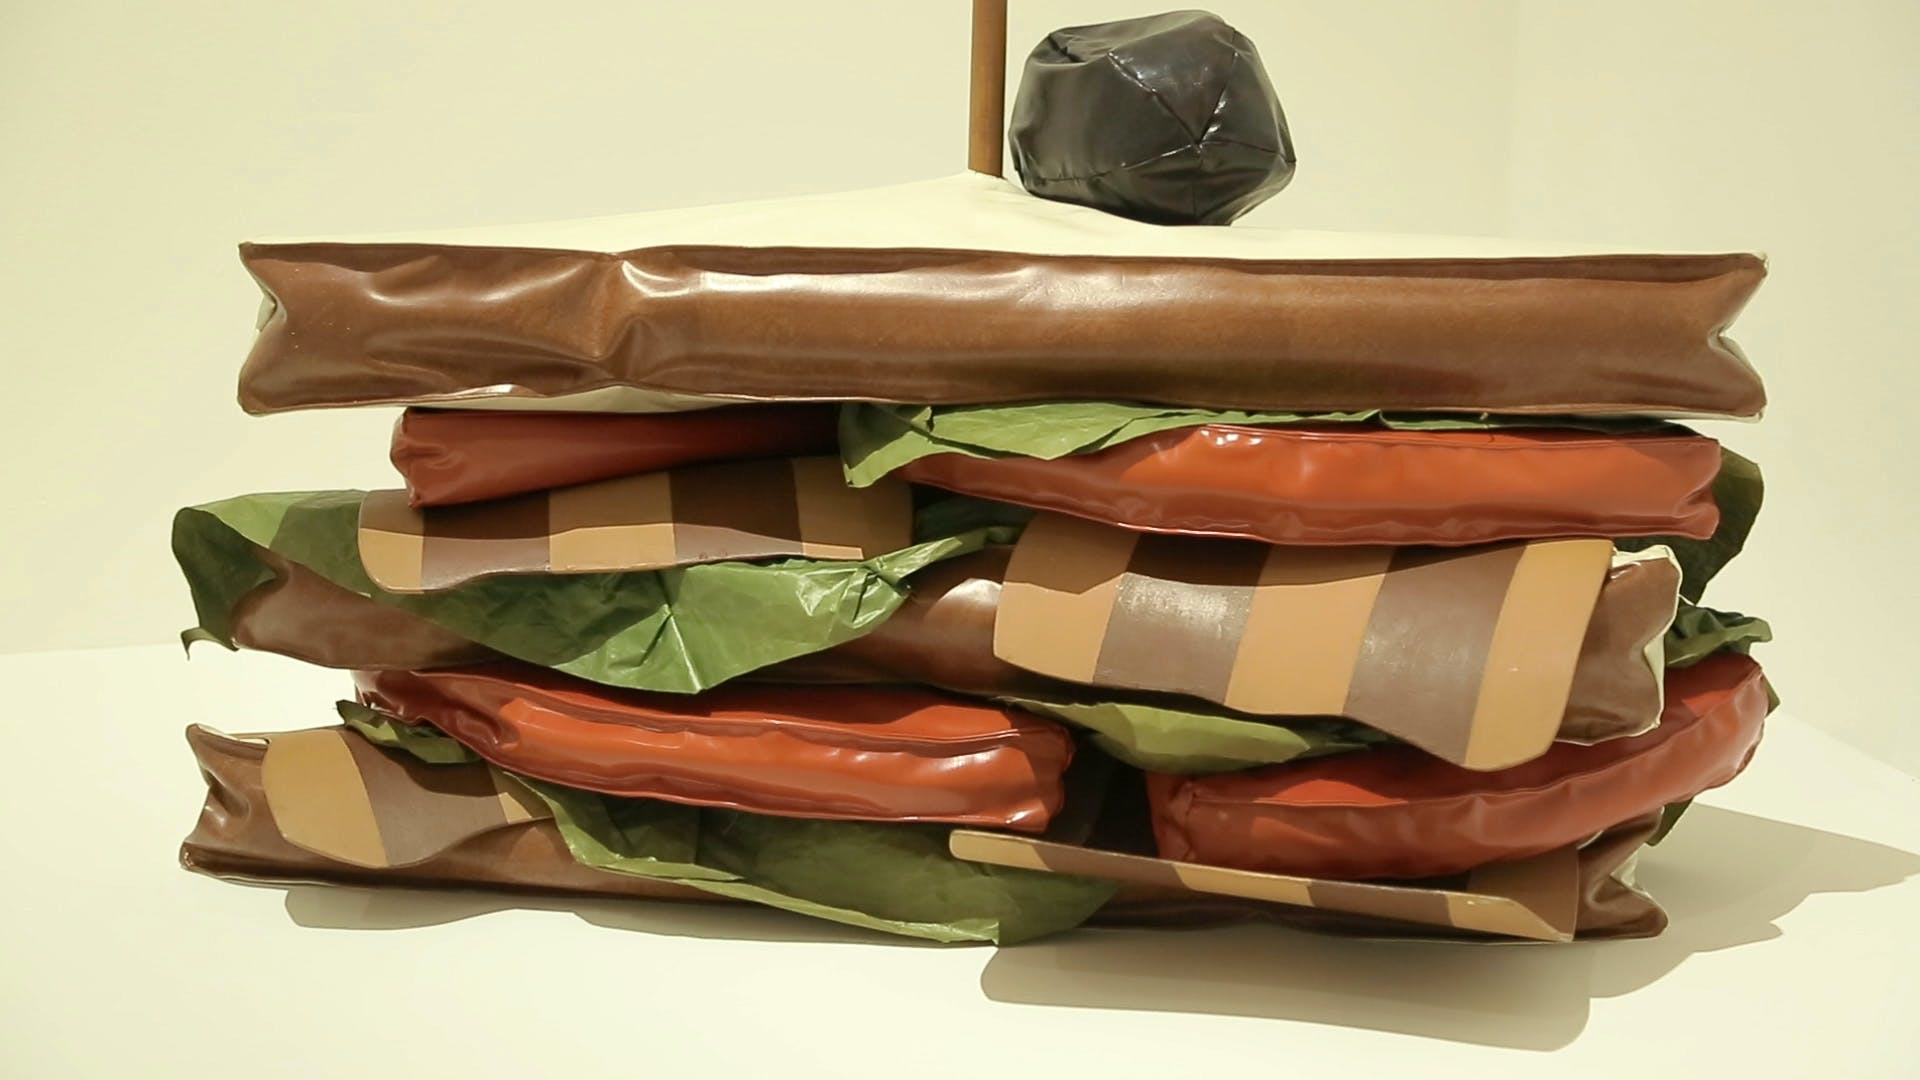 Claes Oldenburg, Giant BLT (Bacon, Lettuce, and Tomato Sandwich), 1963